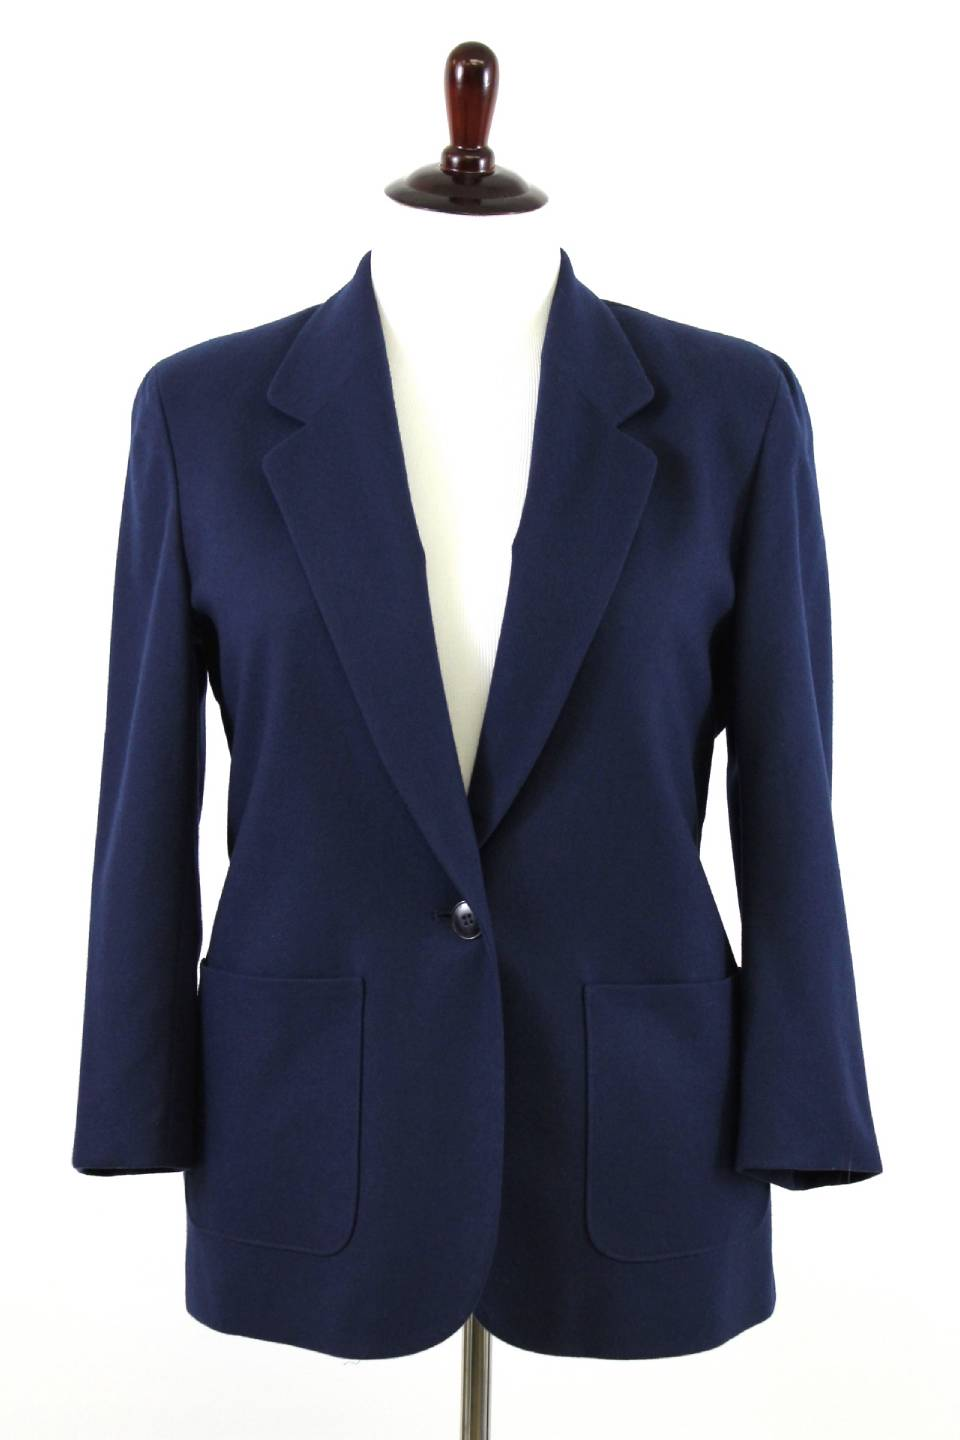 Tommy Hilfiger Women's Belted Blazer Vest (Navy, 6) Sold by Rennde. $ $ B-One Little Boys Navy Gold Buttons Stylish Blazer Jacket 2T Sold by Sophias Style Boutique Inc + 1. $ - $ Unotux 1pcs Boy Kid Child Formal Wedding Party Prom Black Dark Gray Navy White Suit Tuxedo Blazer Jacket Only.